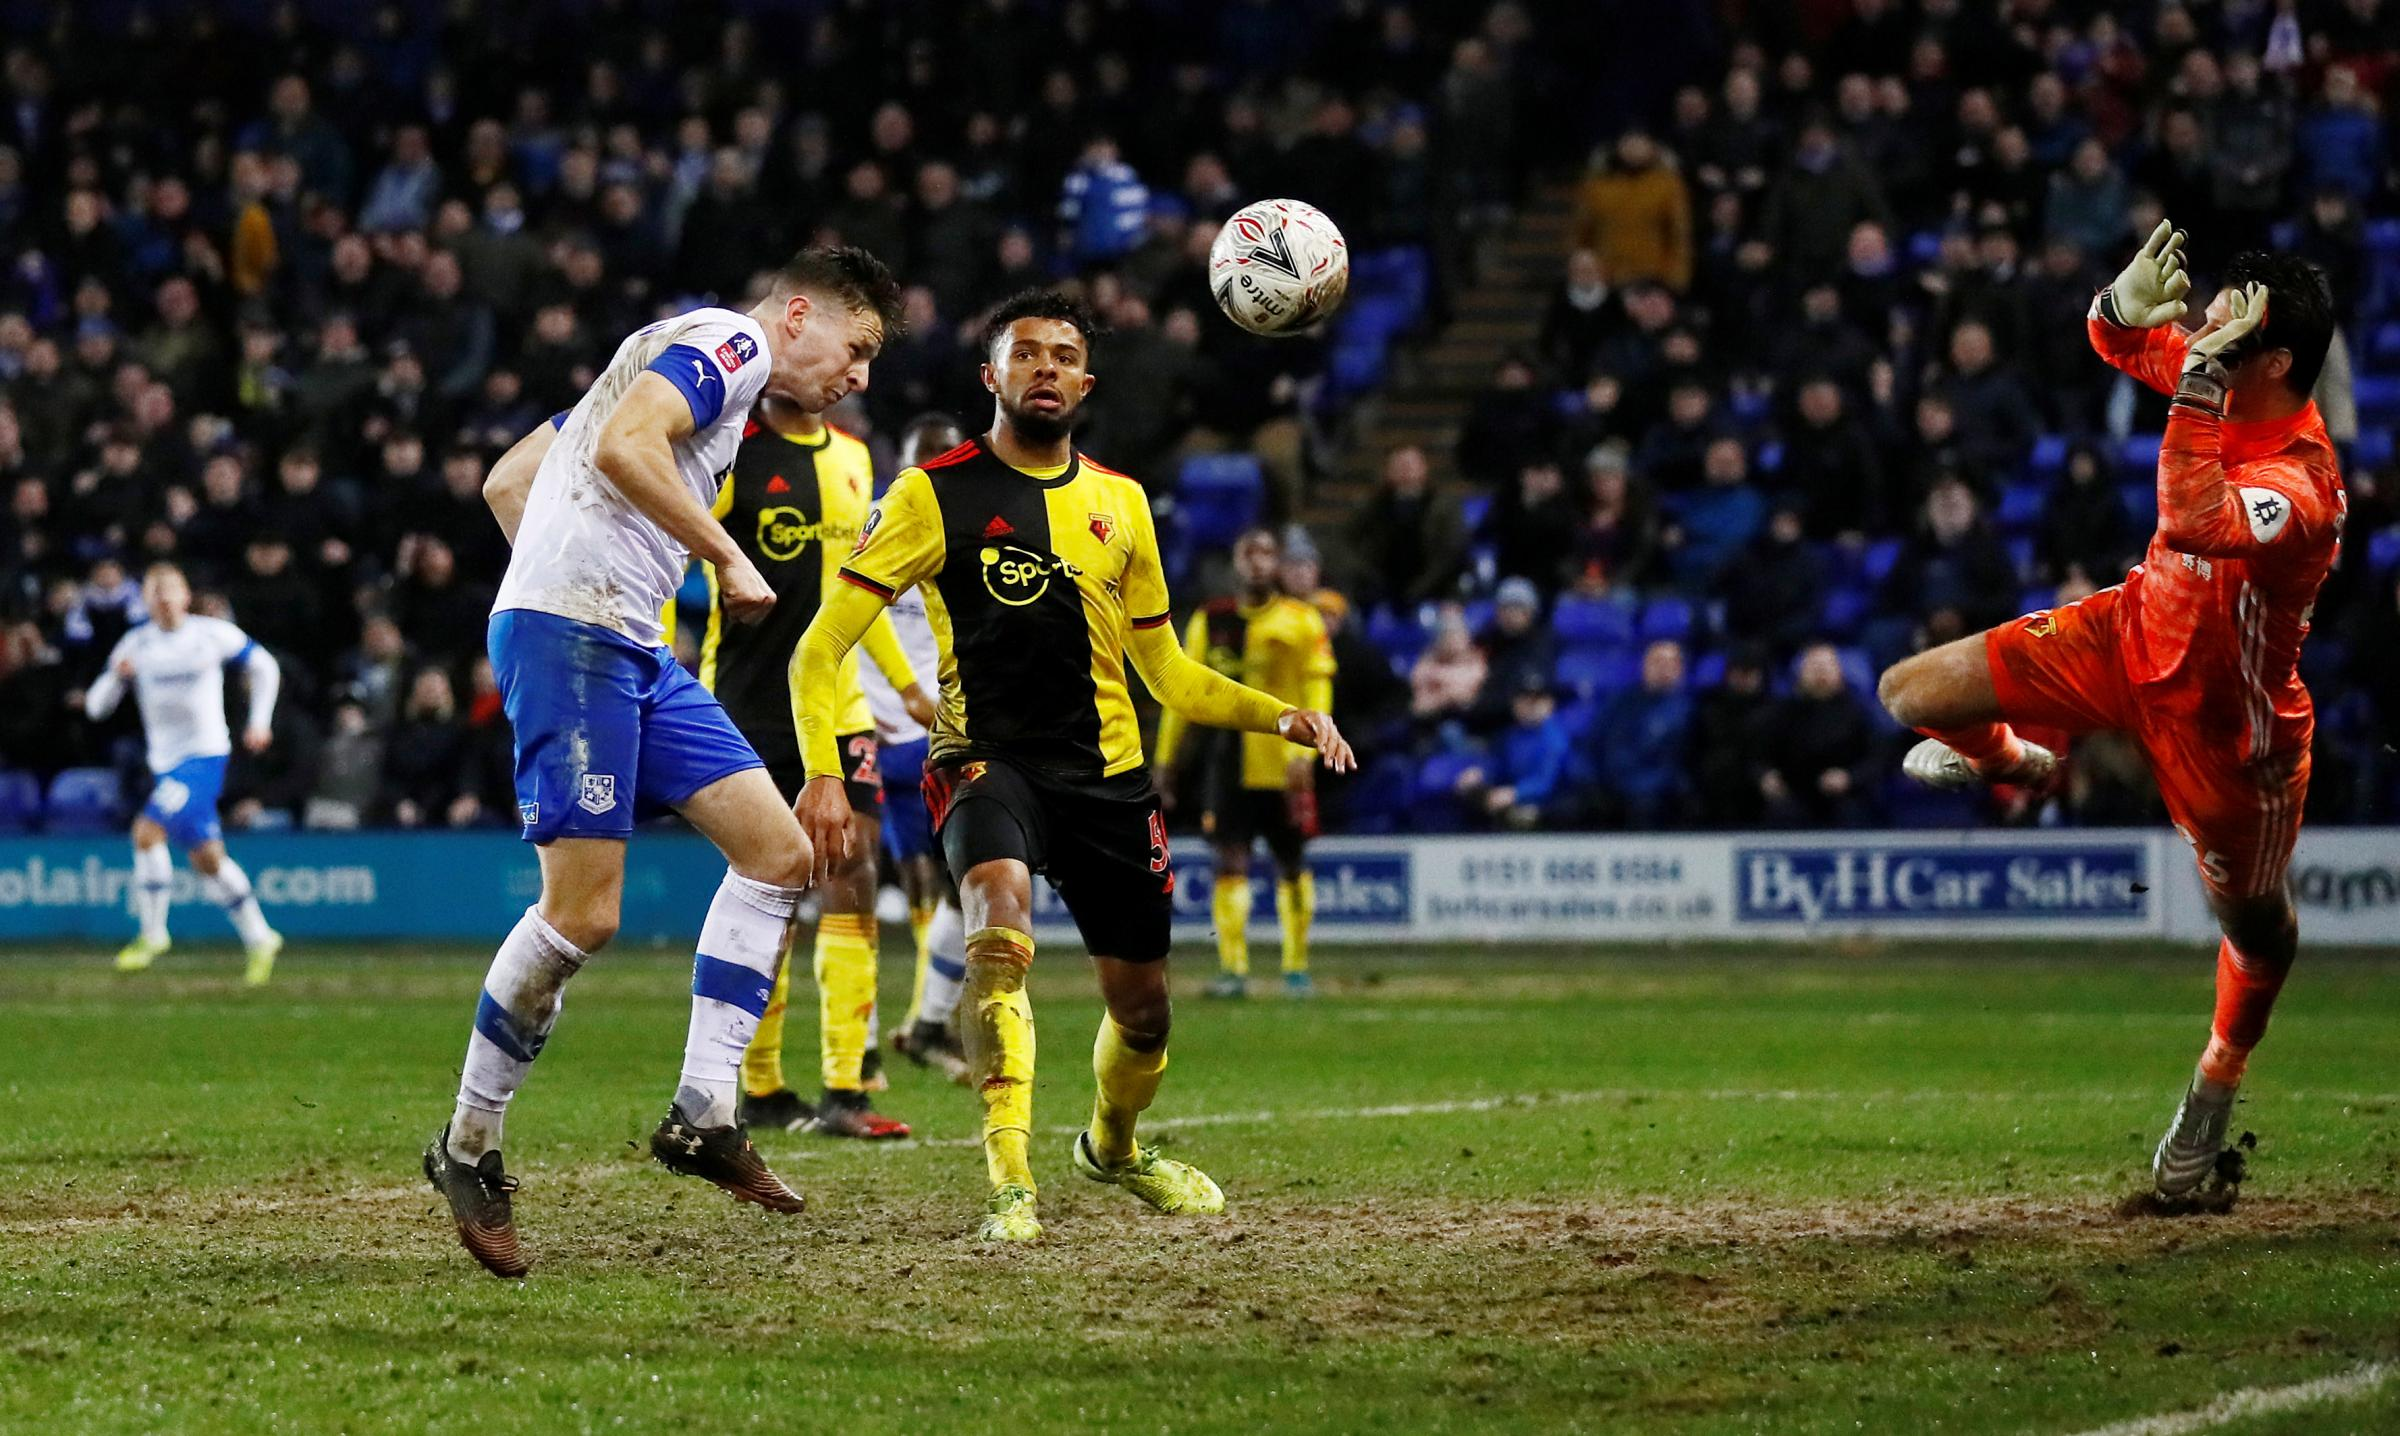 Watford lose to Tranmere Rovers in FA Cup third round replay